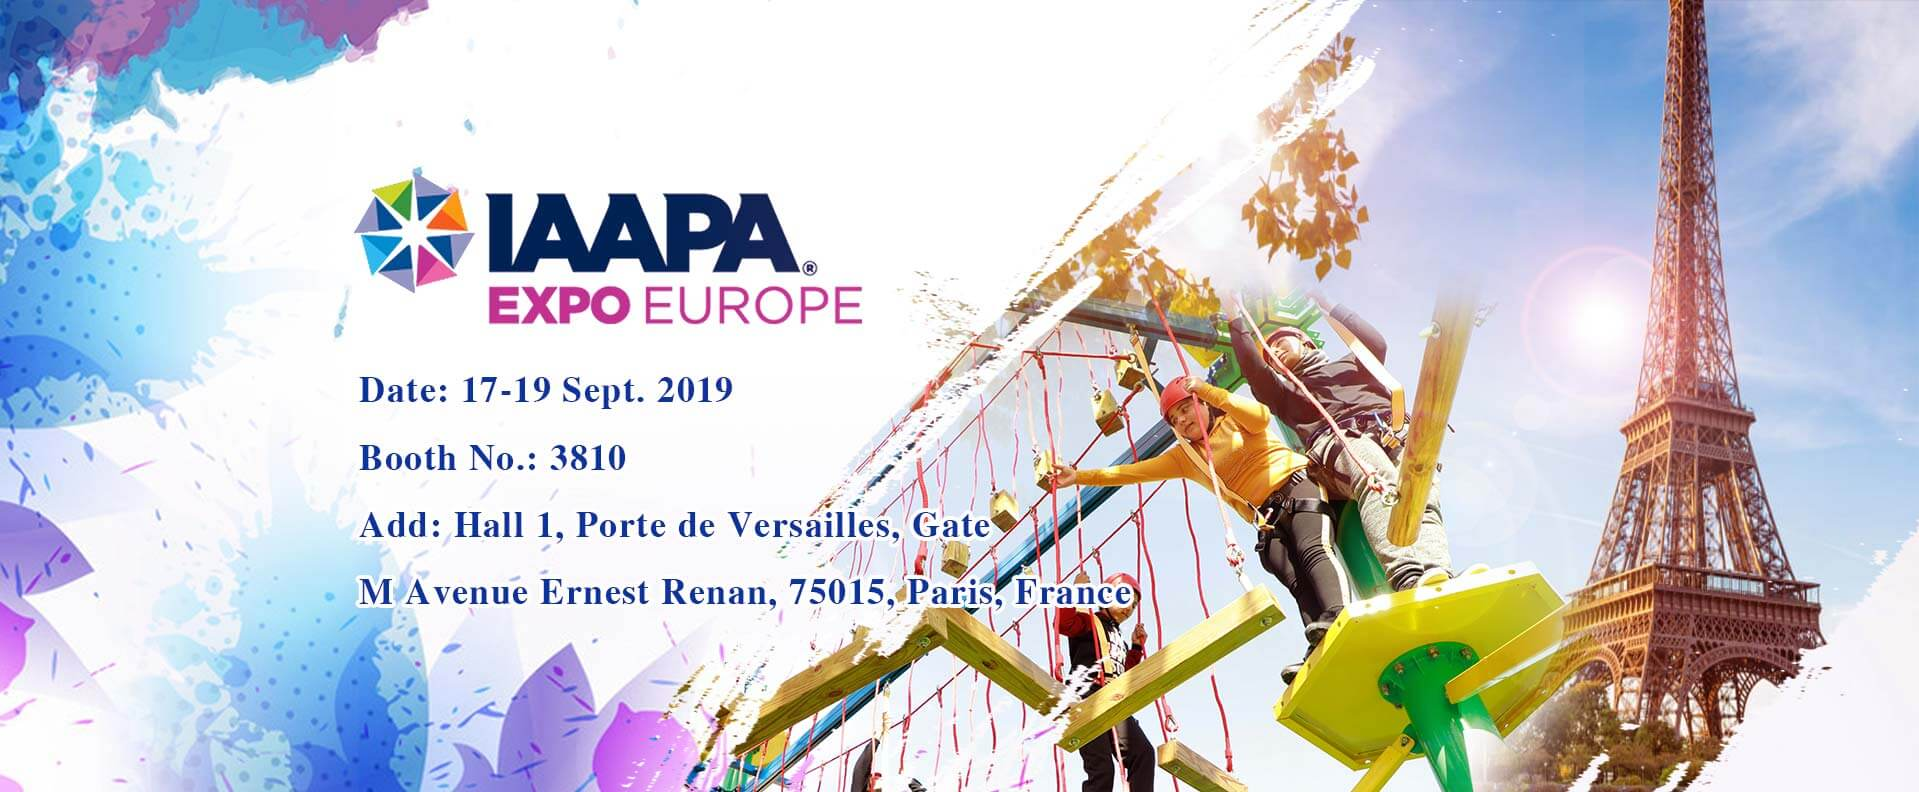 Invitation to IAAPA Expo Europe 2019